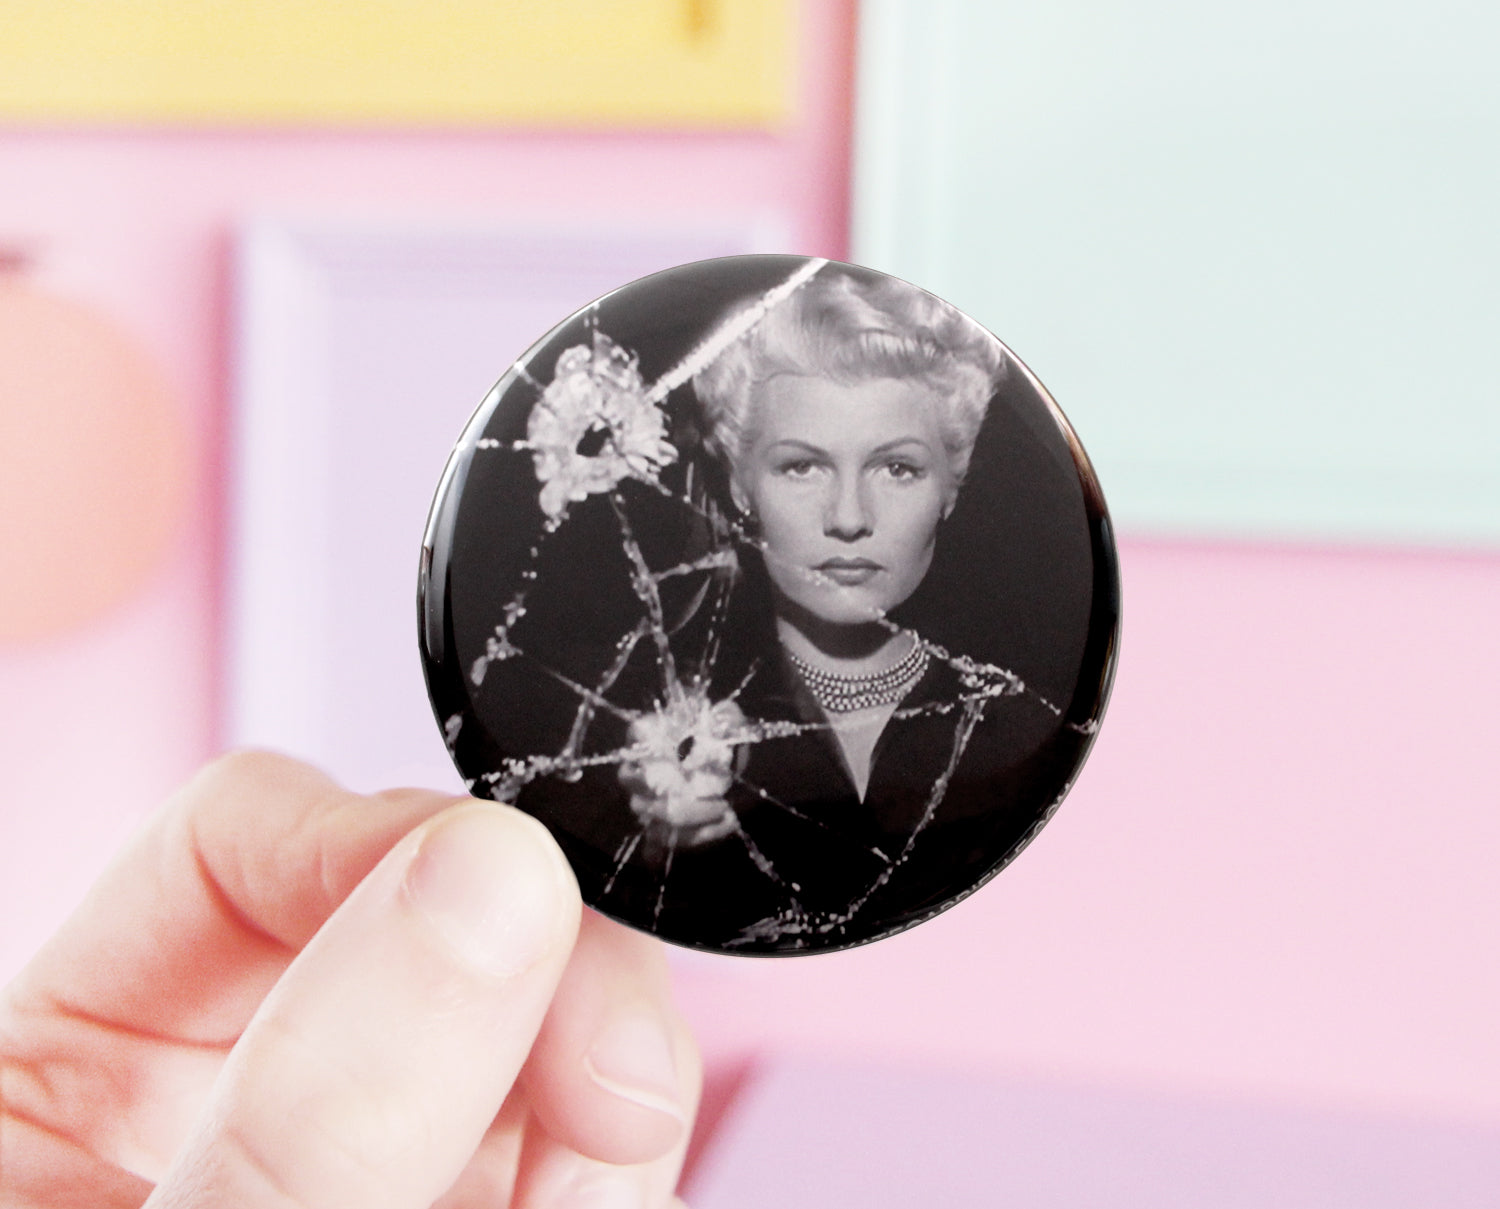 The Lady from Shanghai pocket mirror